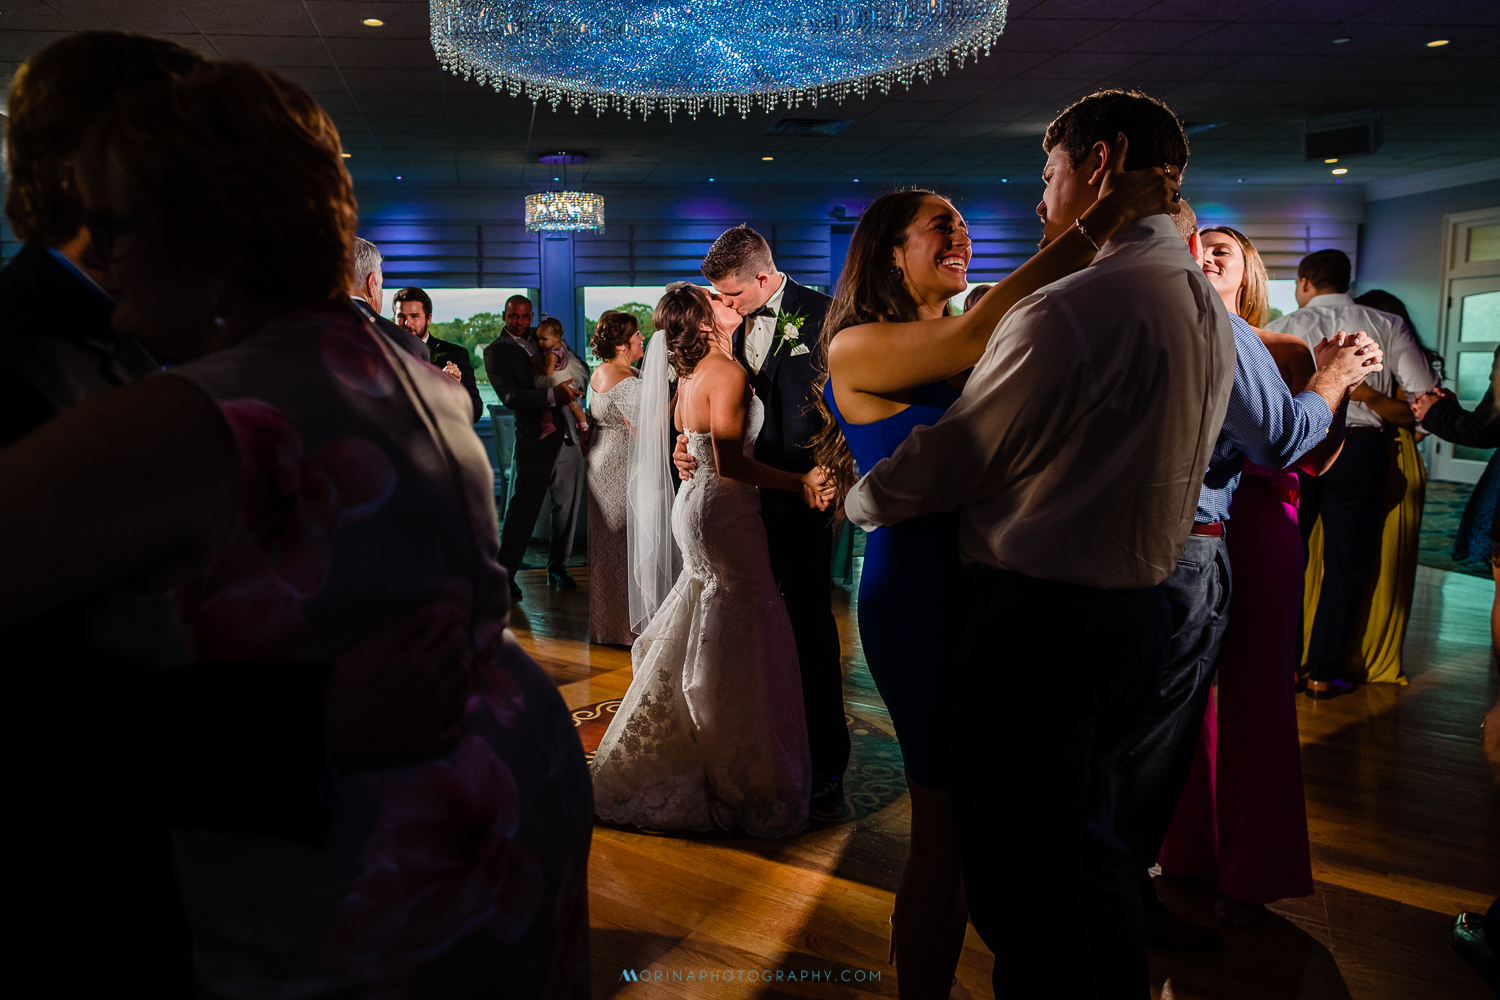 Amanda & Austin wedding at Crystal Point Yacht Club 105.jpg